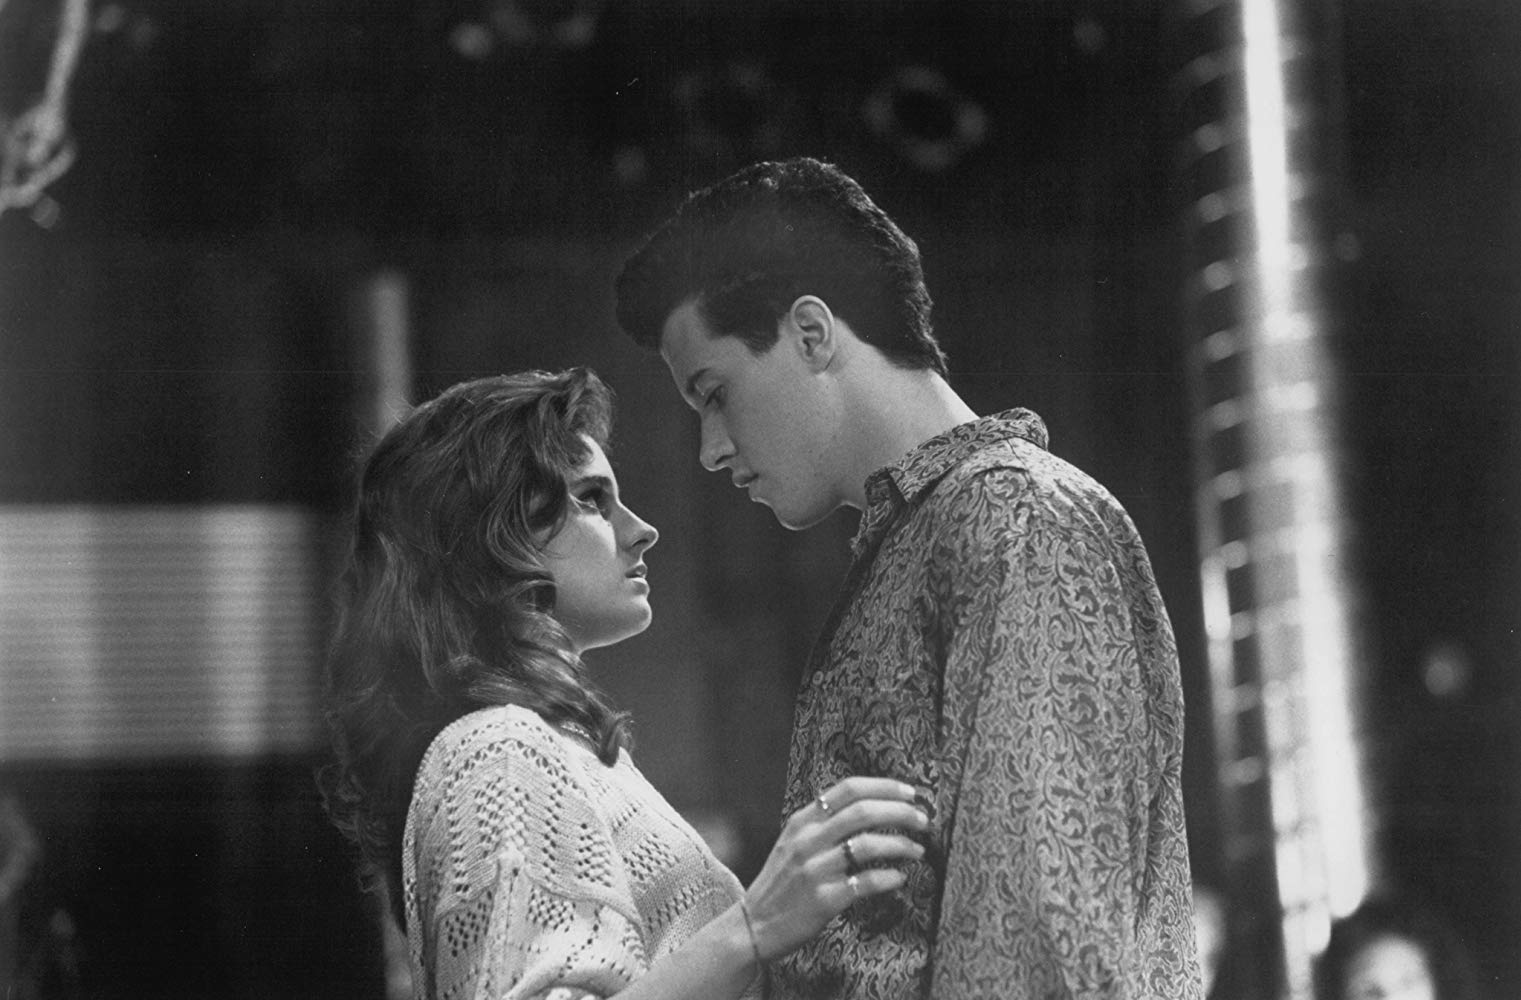 Peter Dobson and Jessica Steen in Sing (1989)